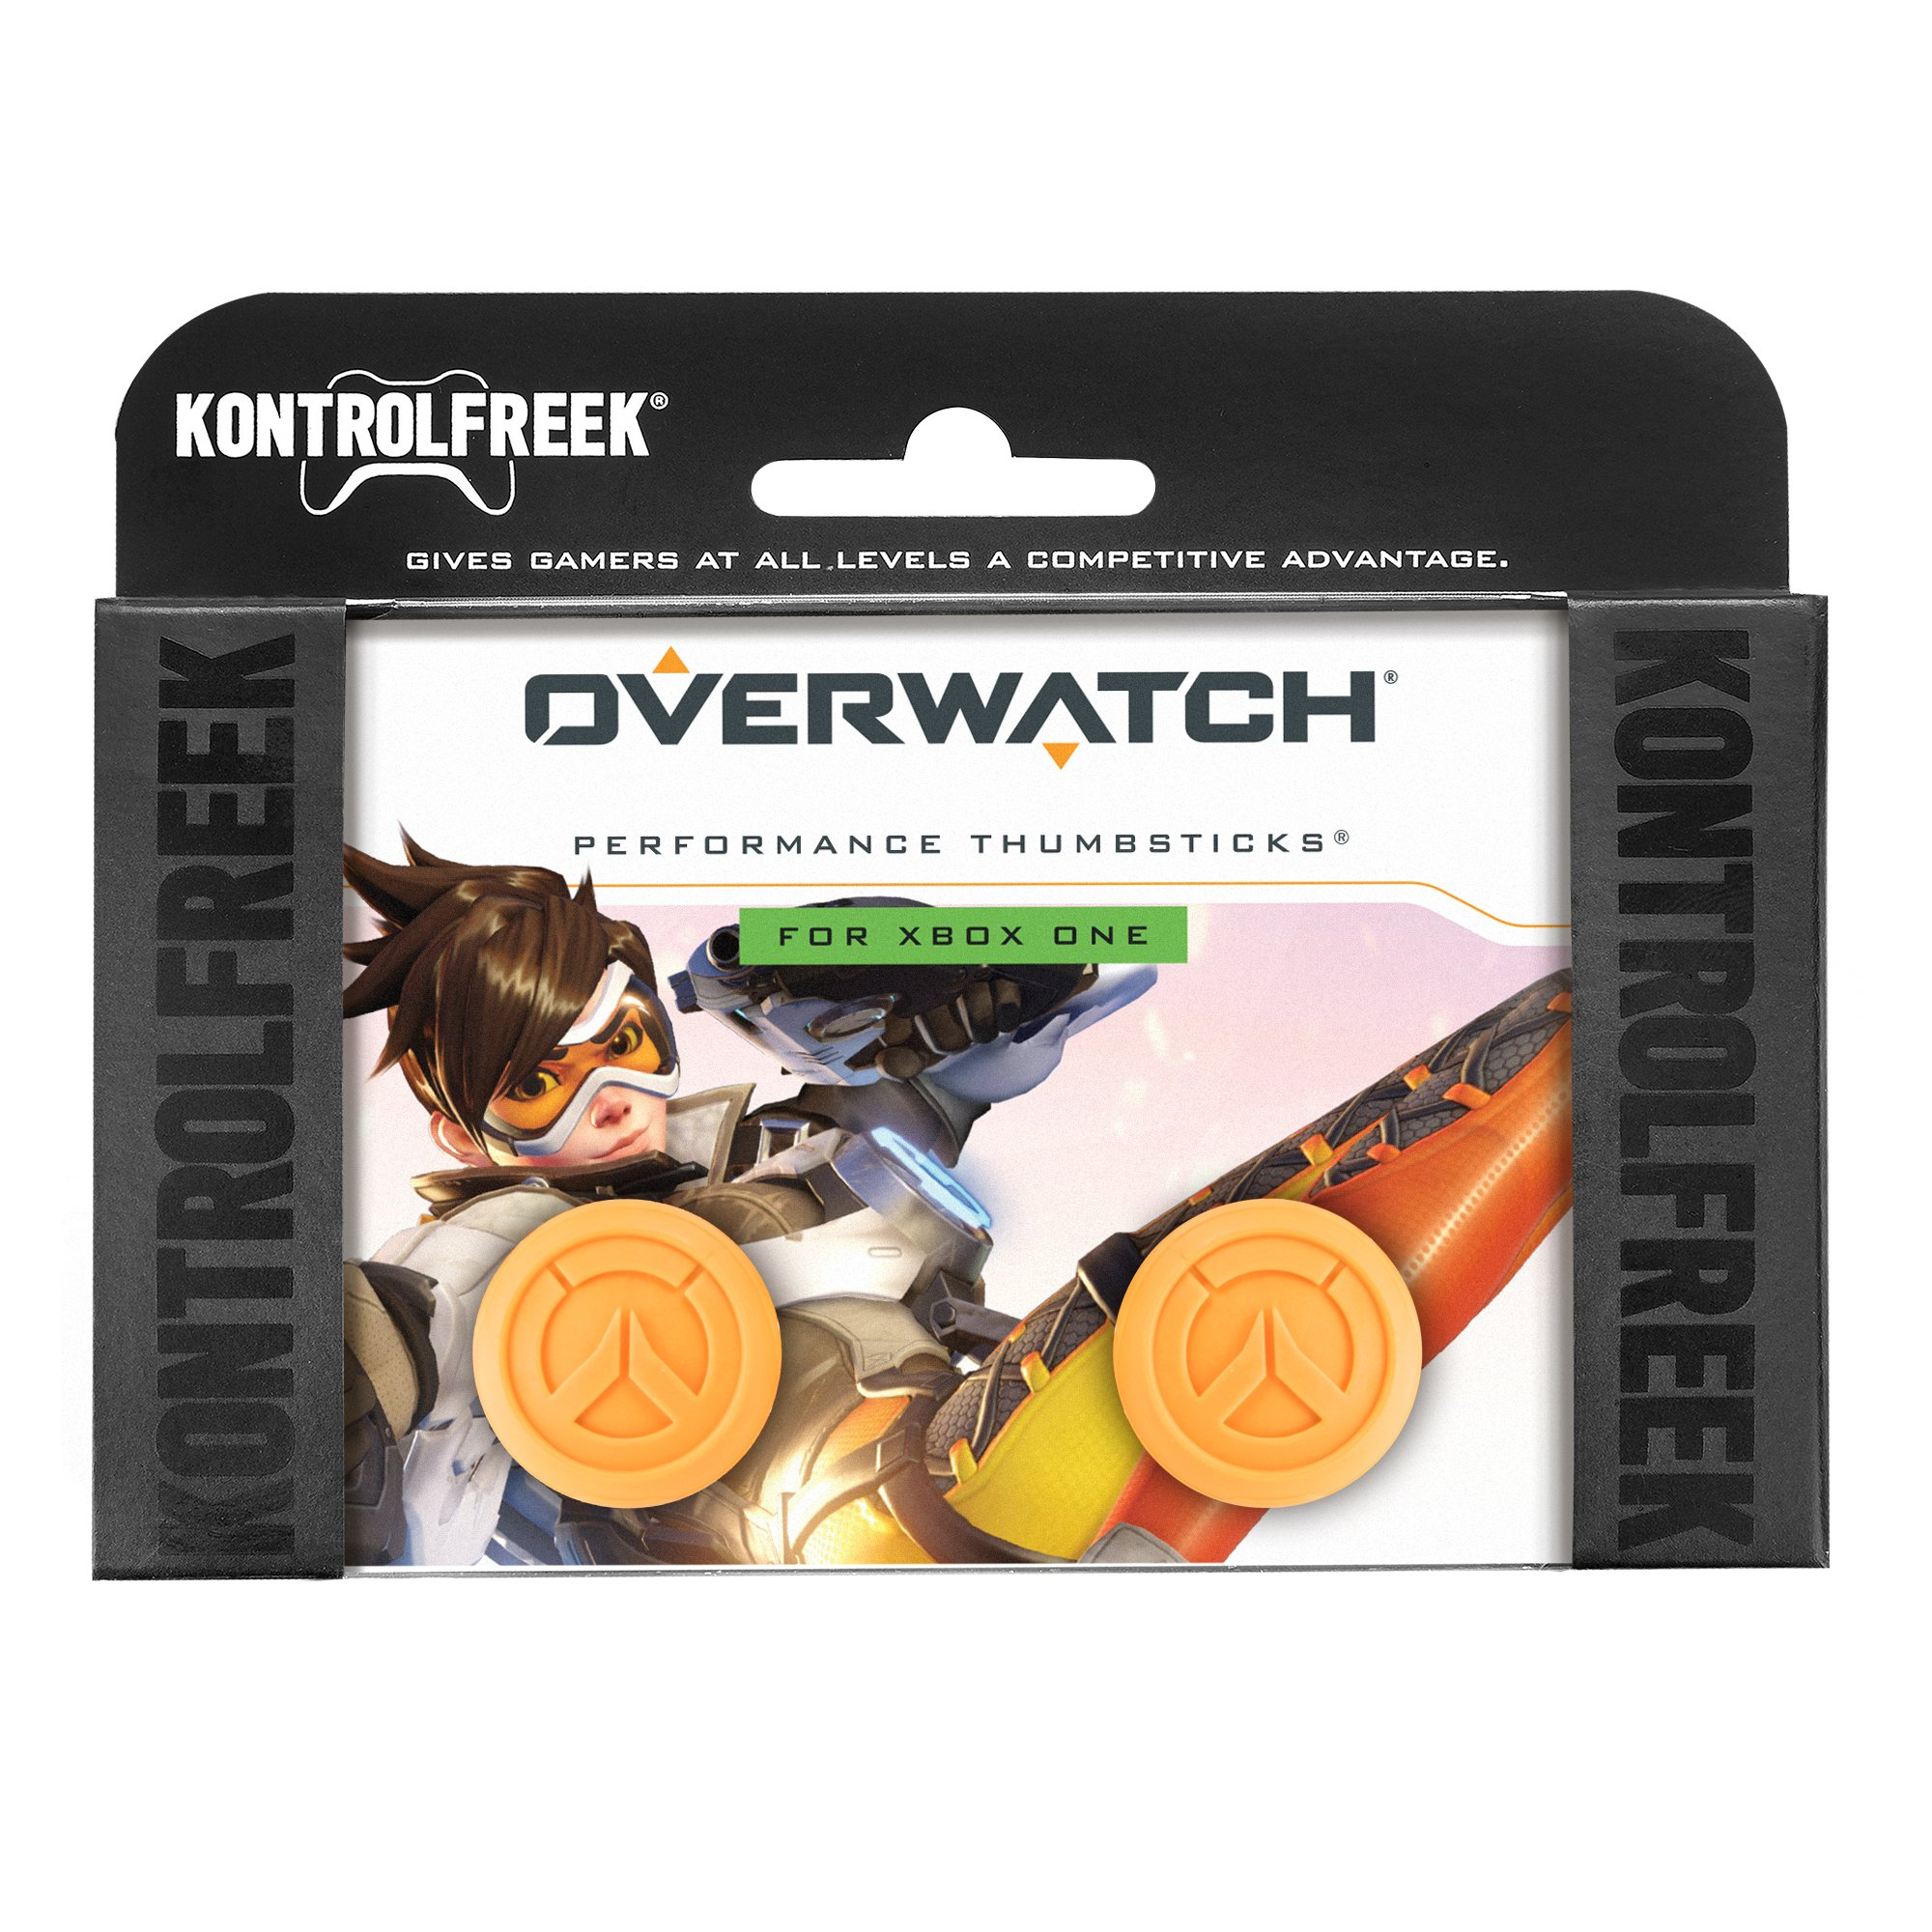 KontrolFreek Overwatch Performance Thumbsticks for Xbox One